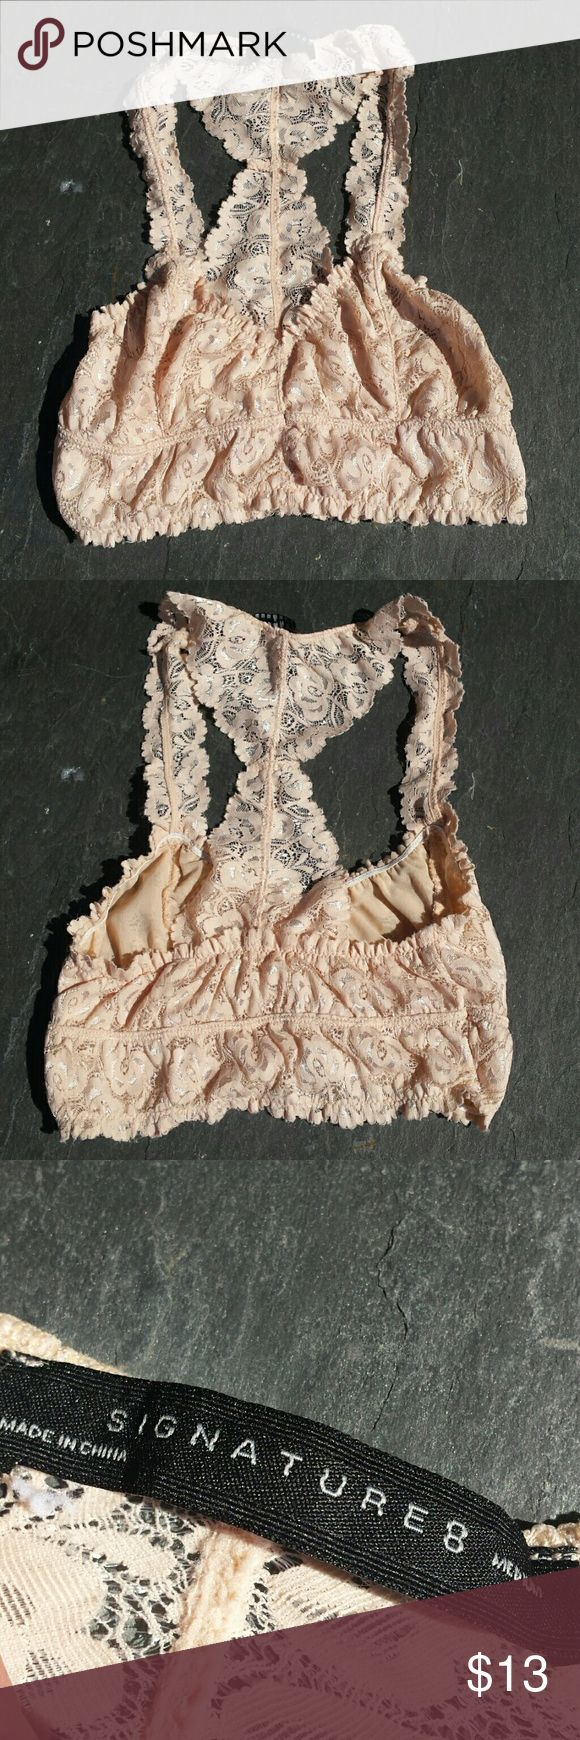 Racer back Bralette Only worn once and in excellent condition.   -Color: Blush Intimates & Sleepwear Bandeaus